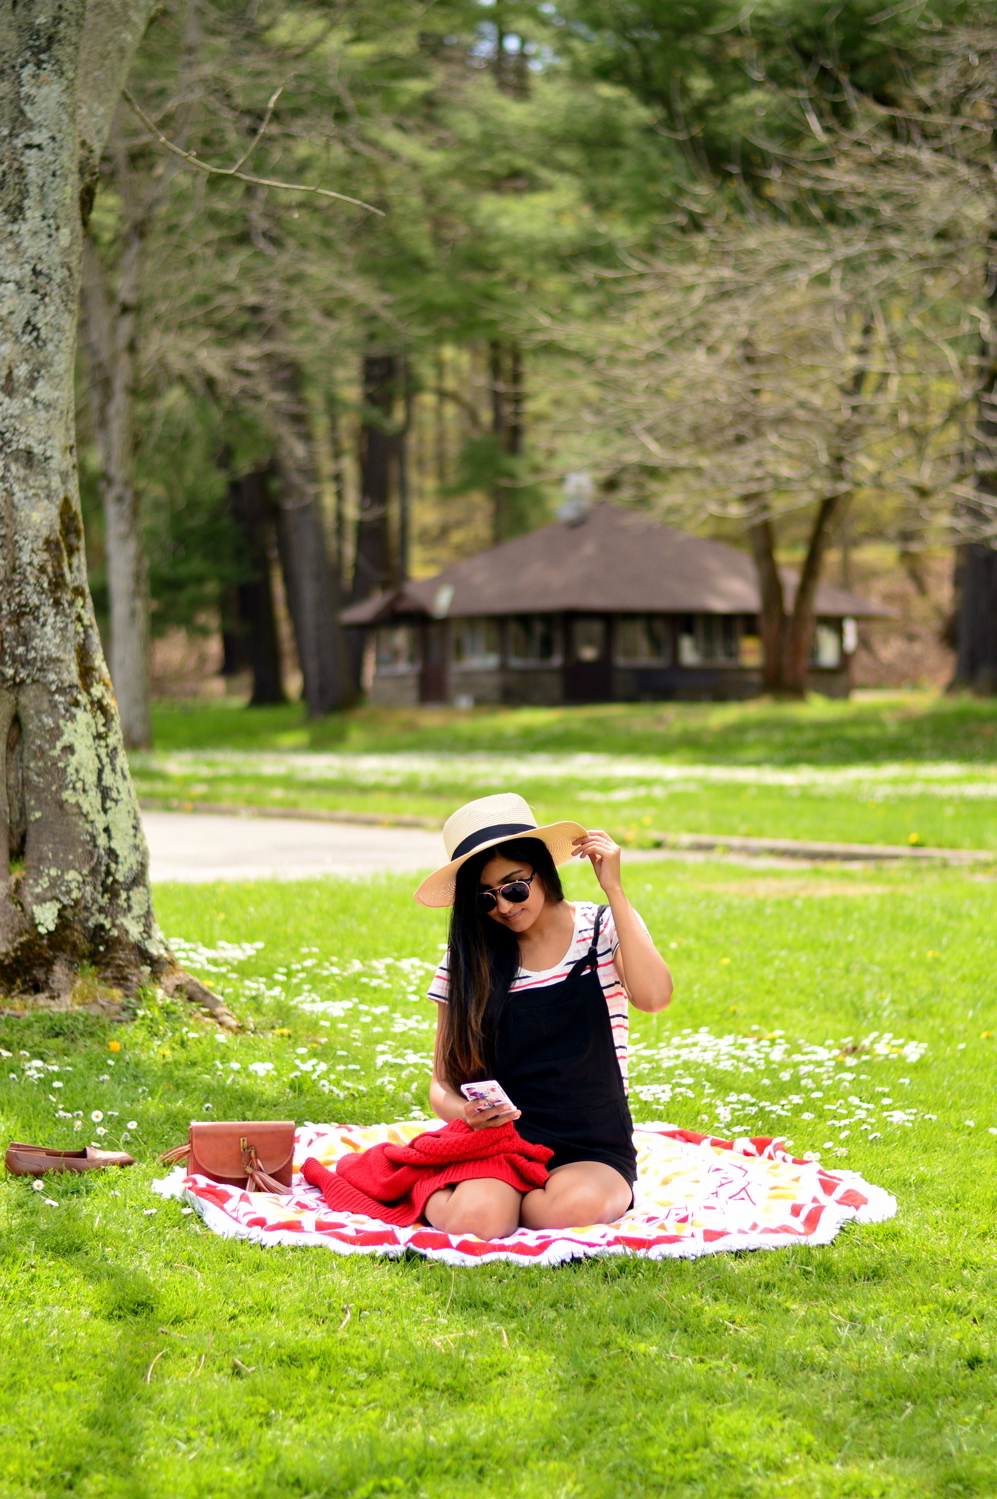 black-overalls-stripes-summer-casual-style-picnic-outfit 12